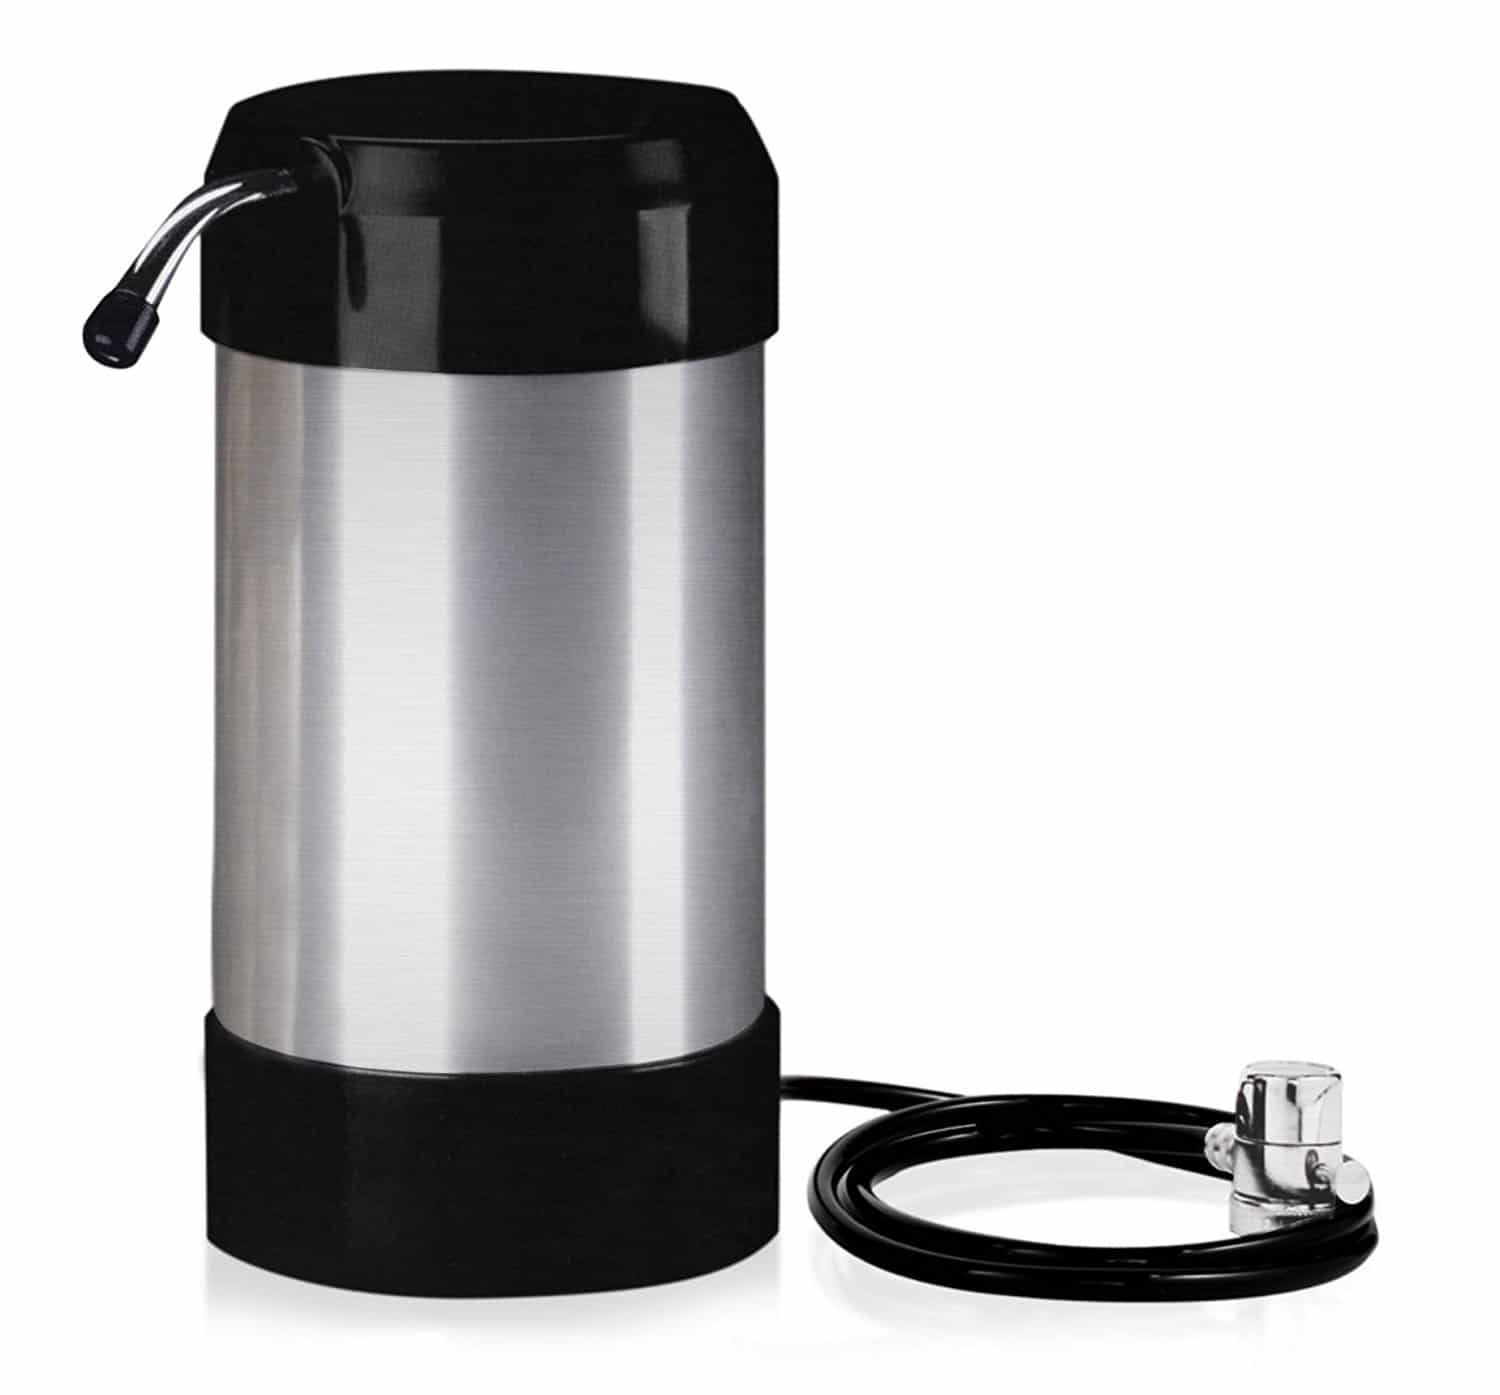 Best Countertop Water Filter Reviews Cleanwater4less Countertop Water Filter Review August 2018